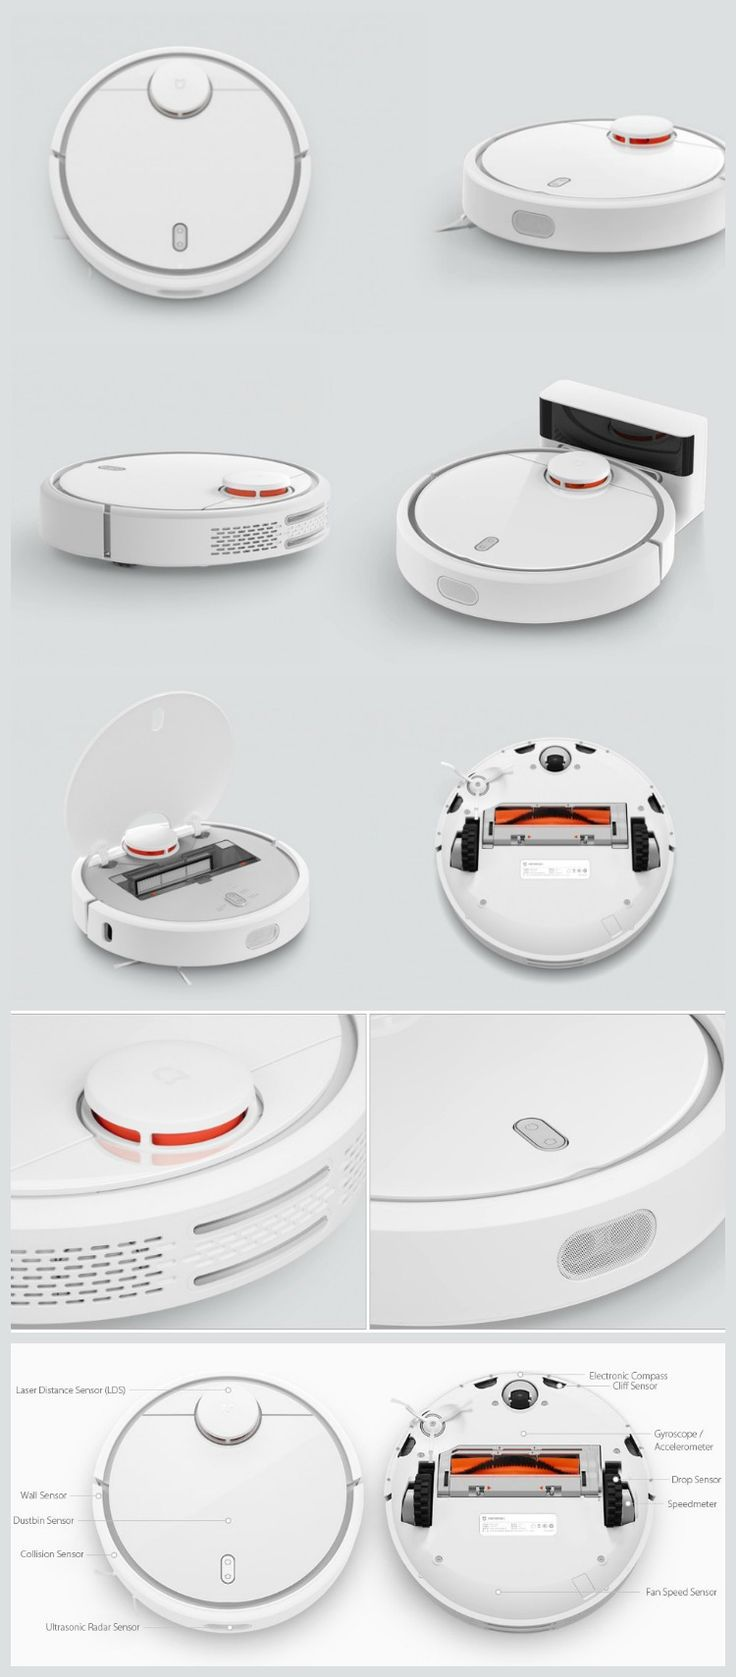 Xiaomi challenges Roomba for the king of robot vacuums throne with the Xiaomi Robotic Vacuum that costs less than half of the Roomba 980.